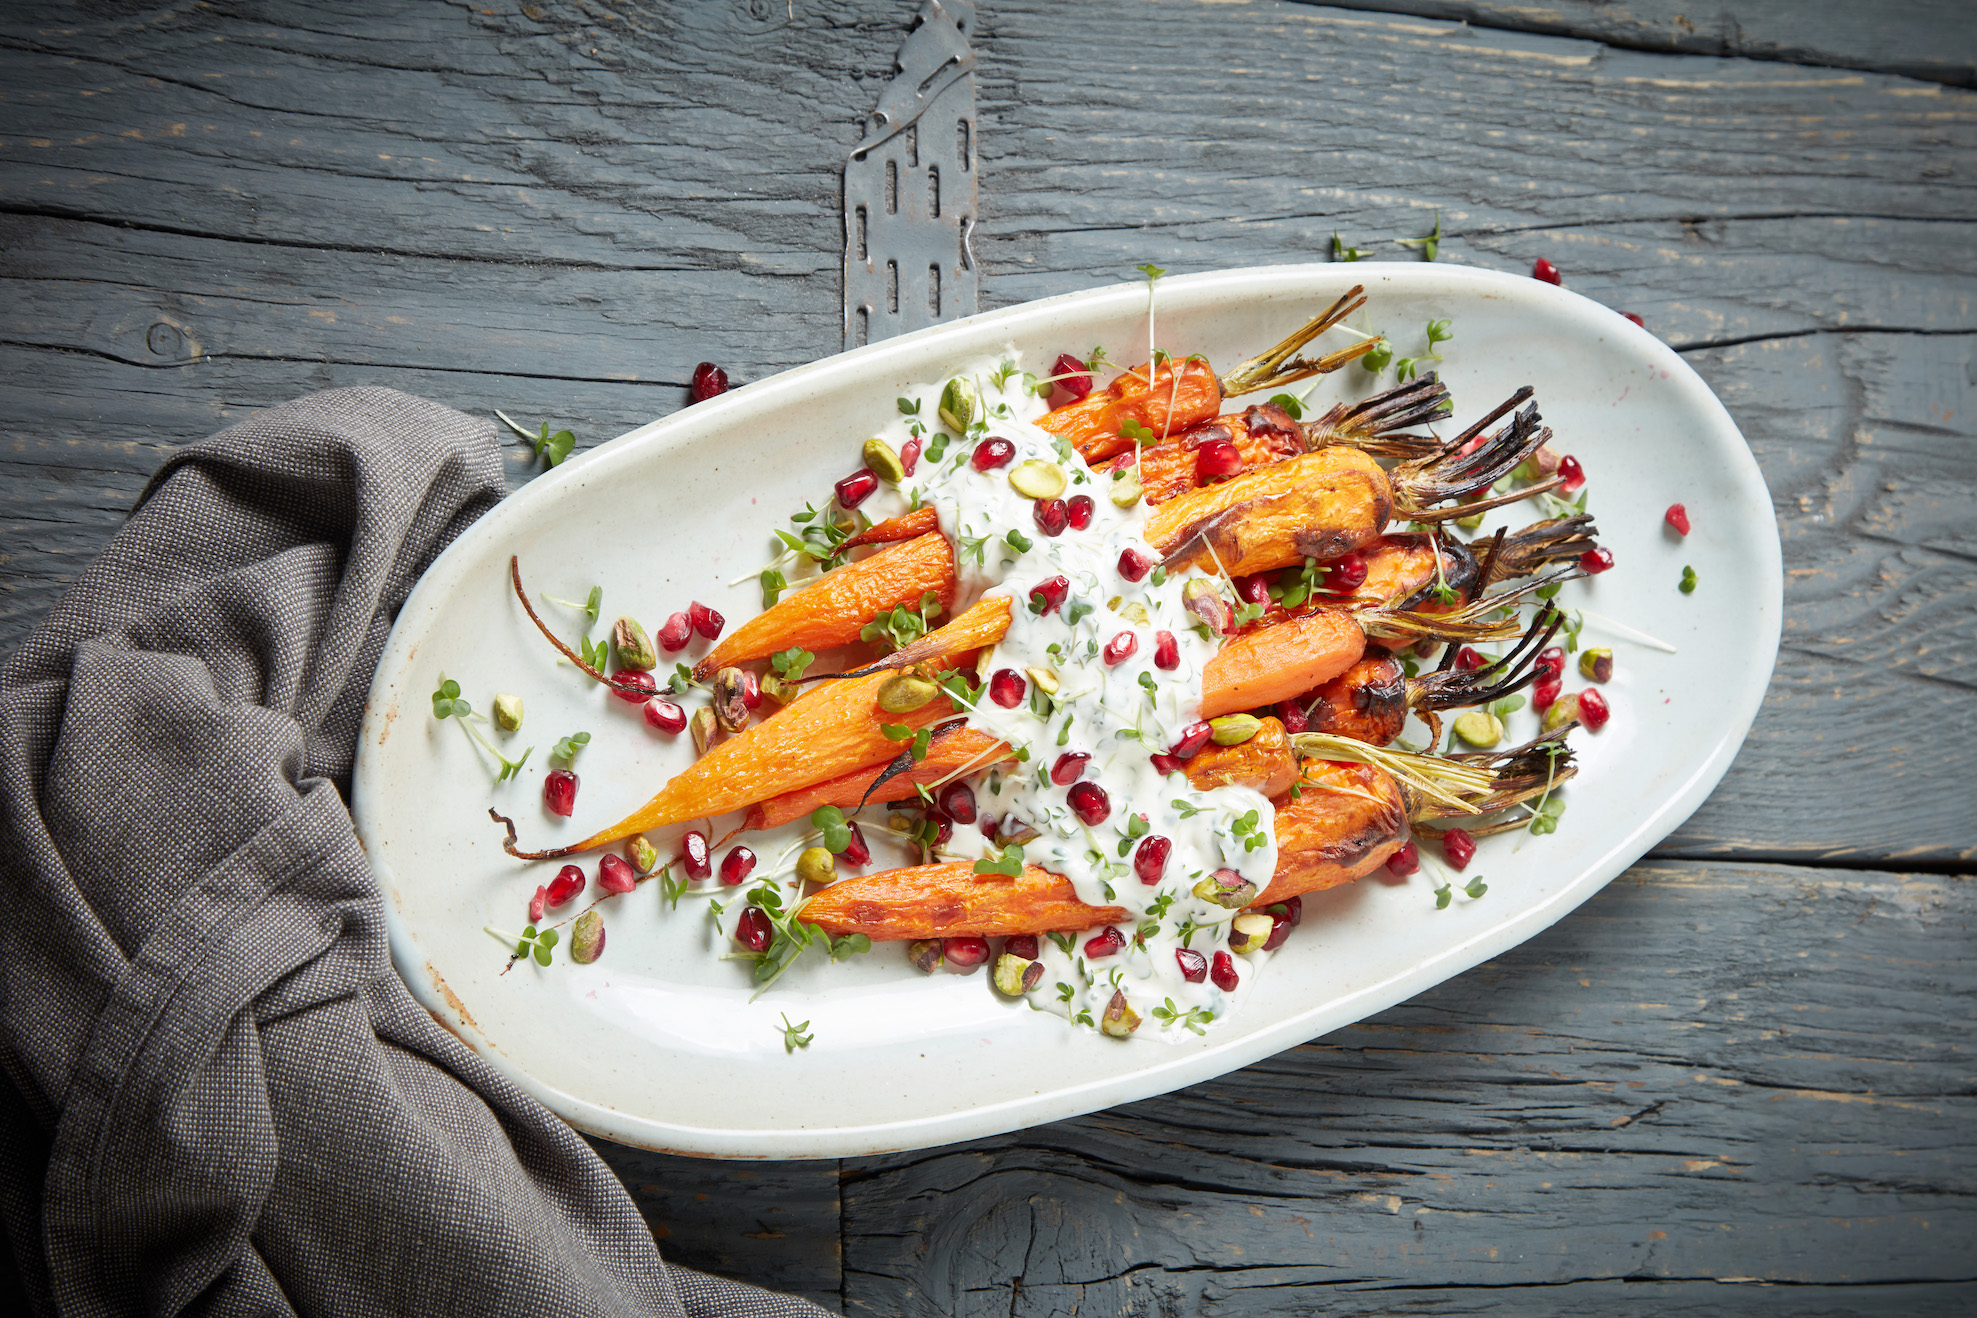 Roasted Carrots with Garlic Cress Sauce